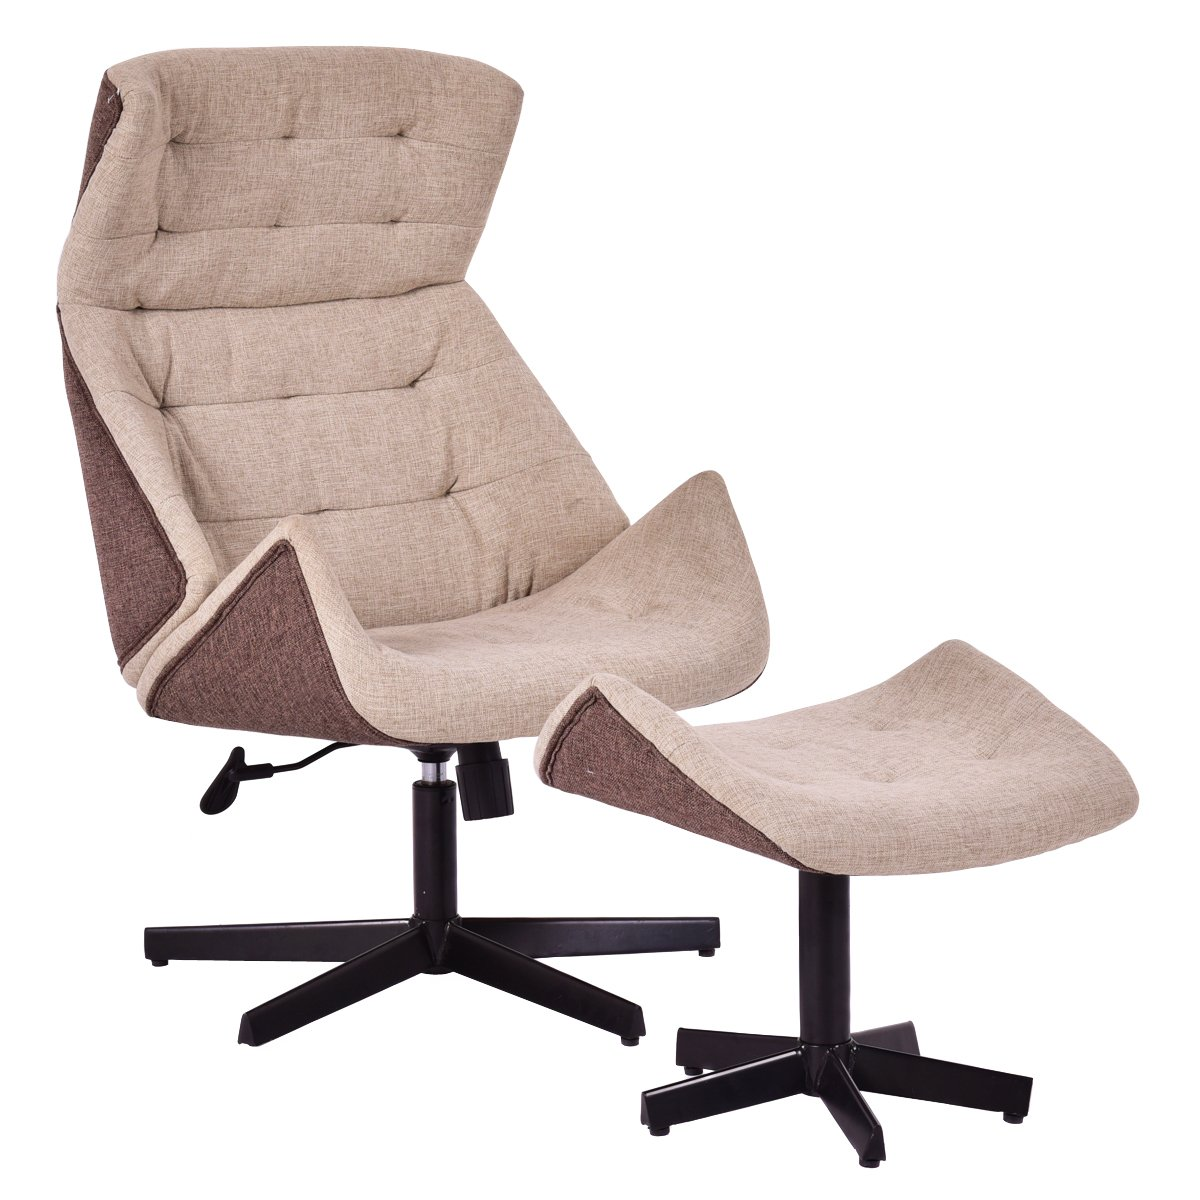 12 Best Modern Most Comfortable Reclining Office Chairs Footrests Bestl